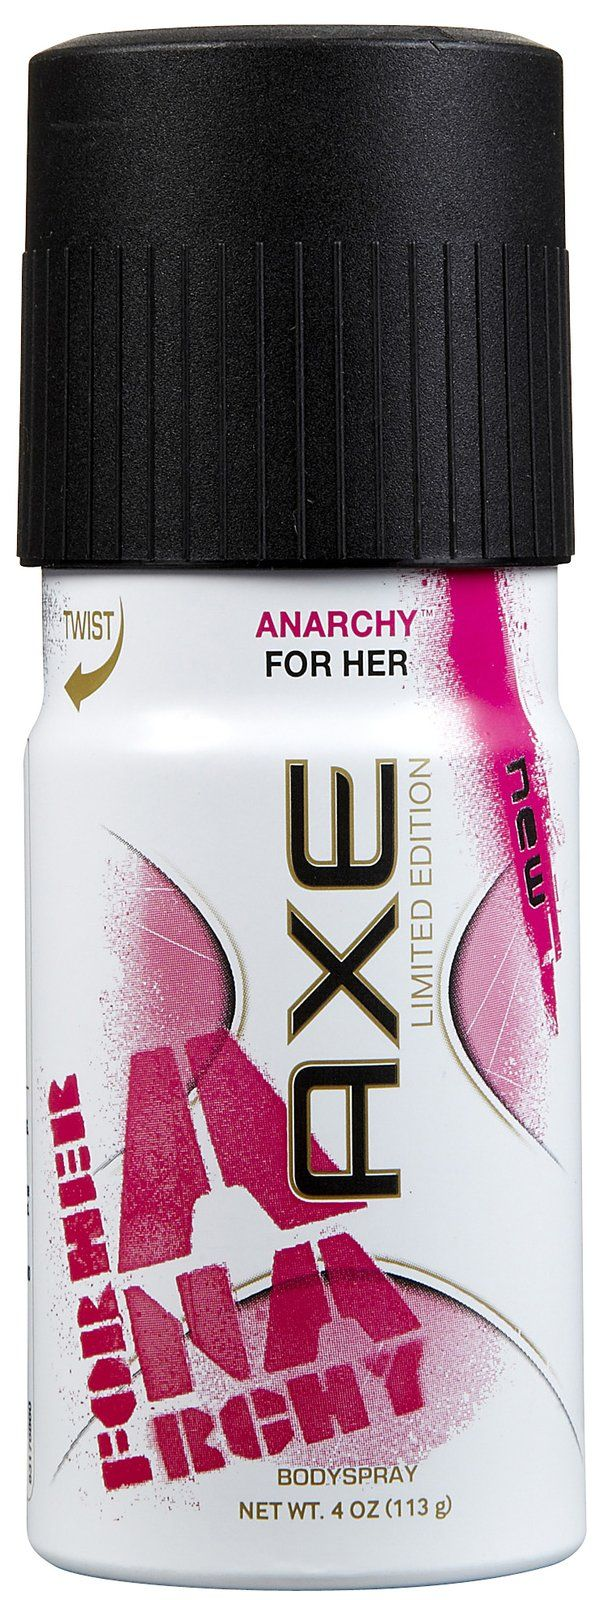 AXE Body Spray for Women - Best Price